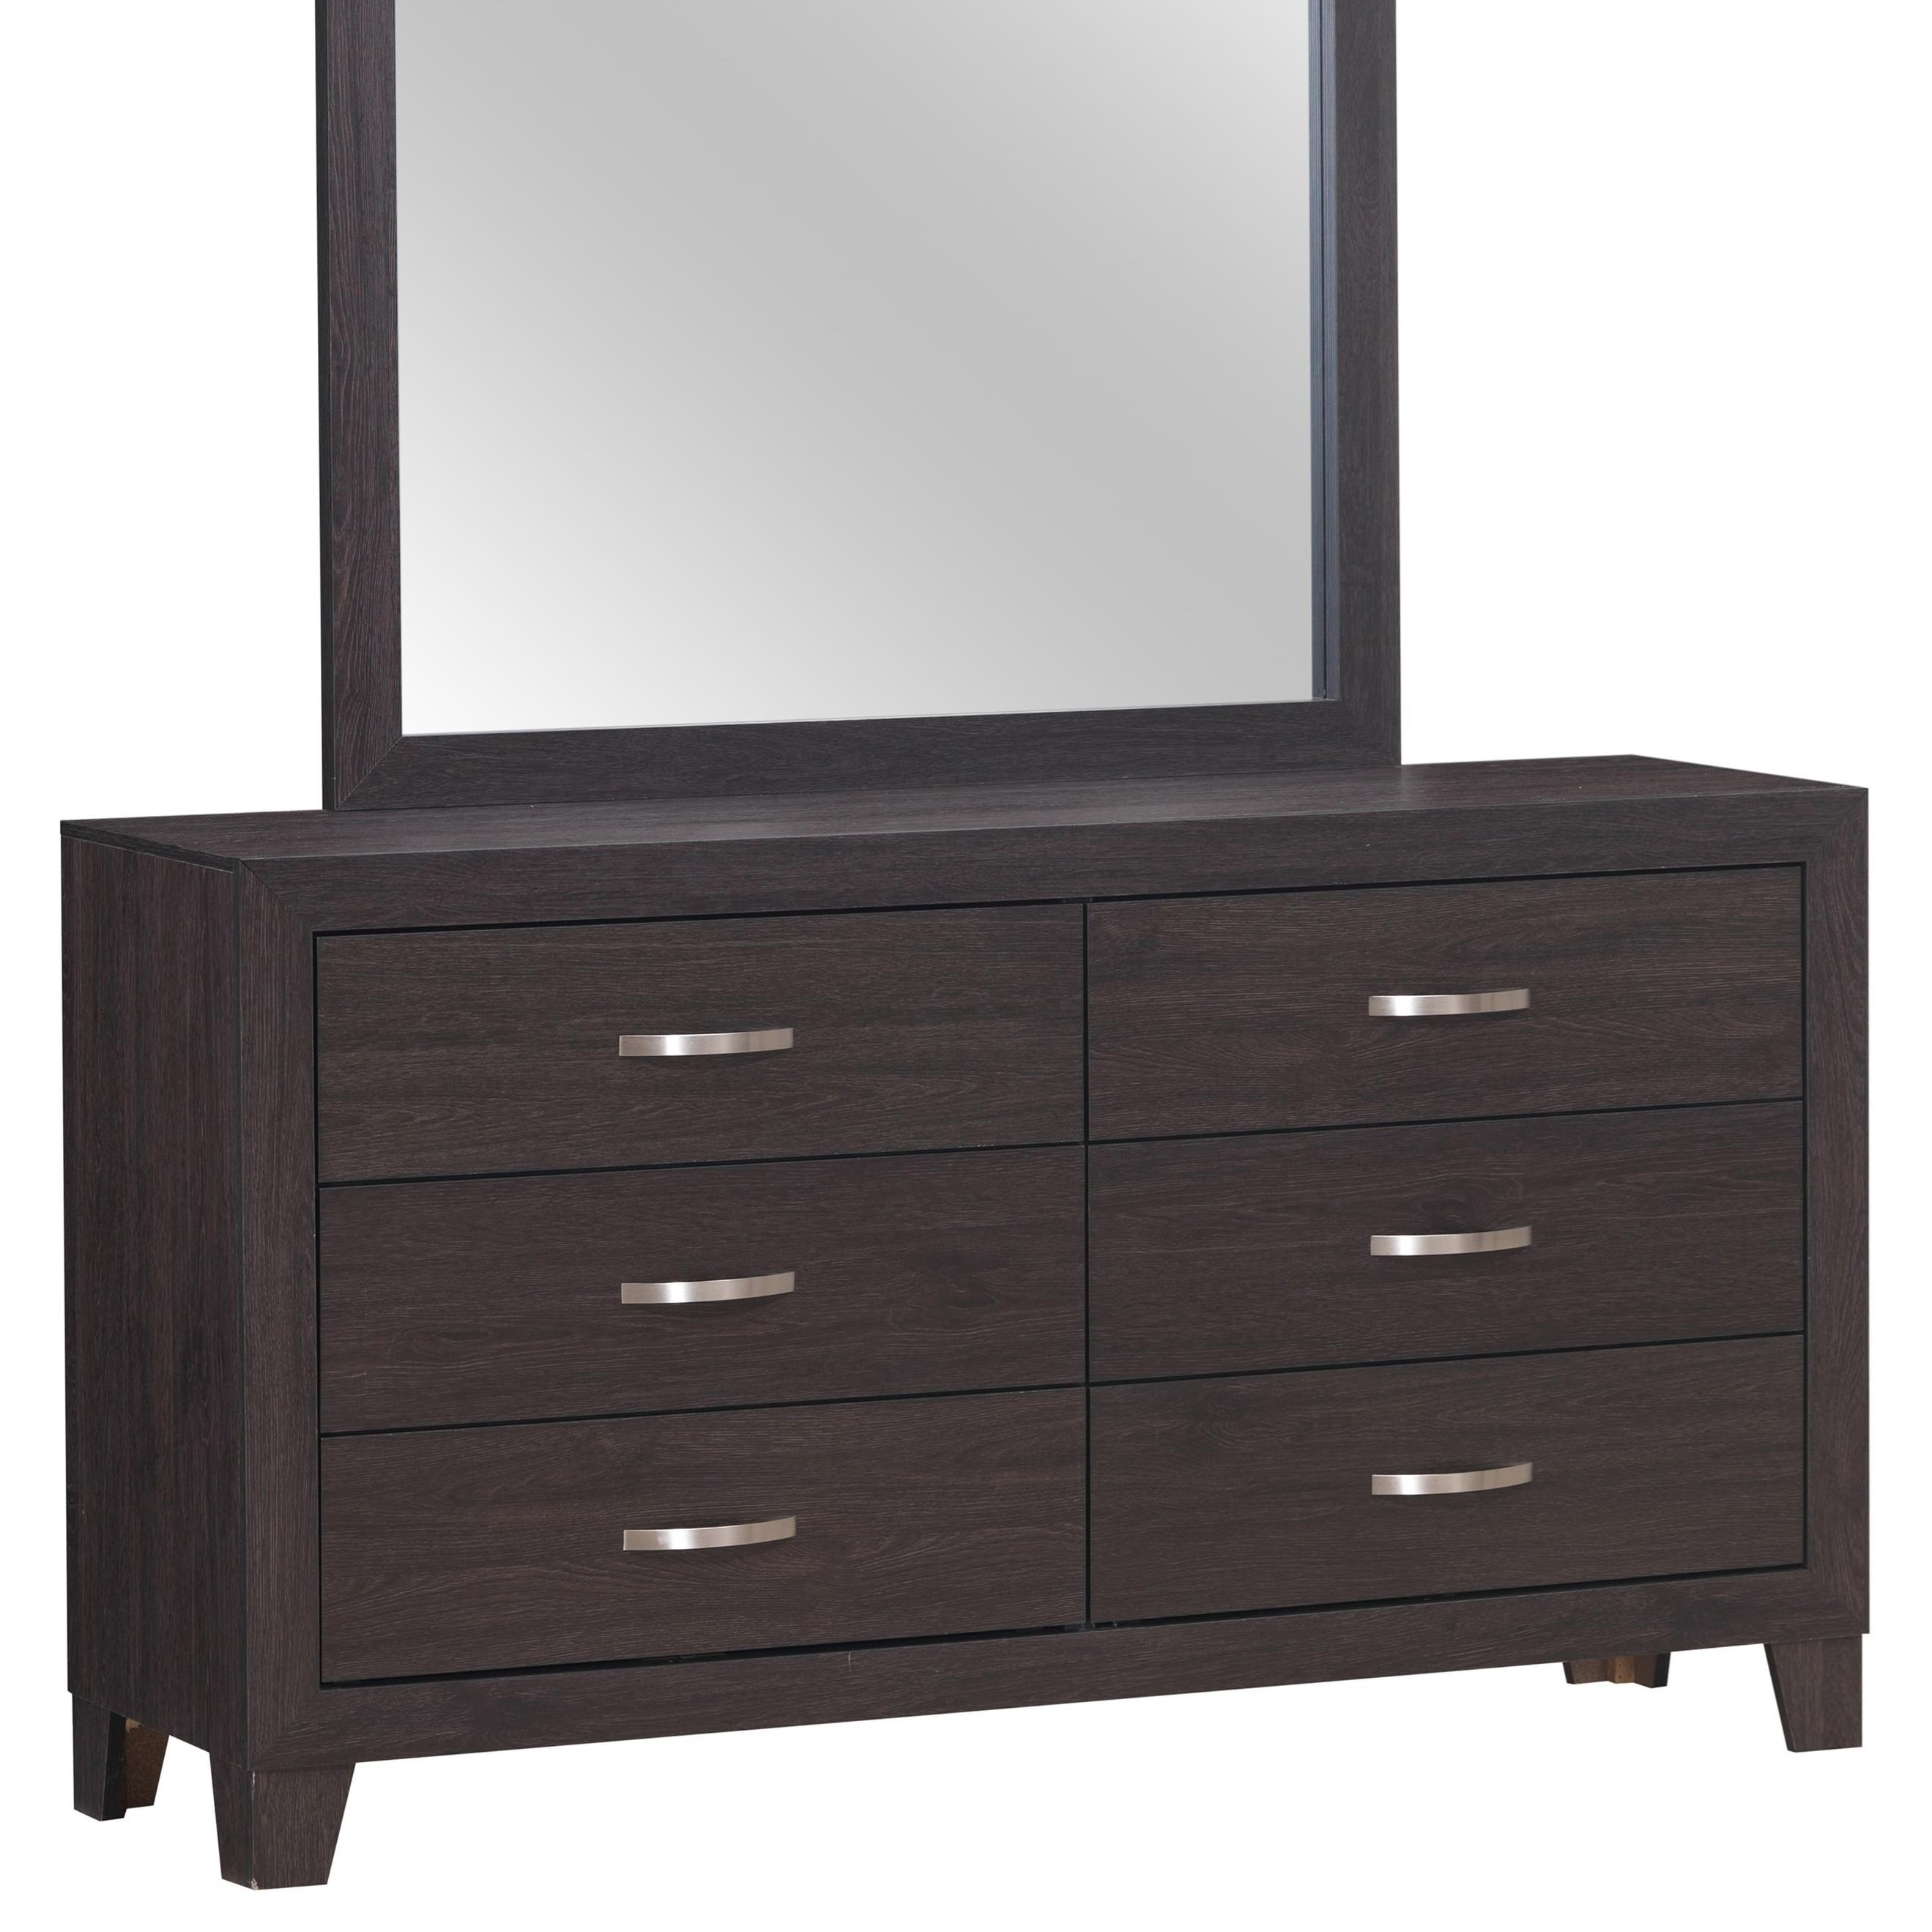 Hopkins Dresser by Crown Mark at Northeast Factory Direct